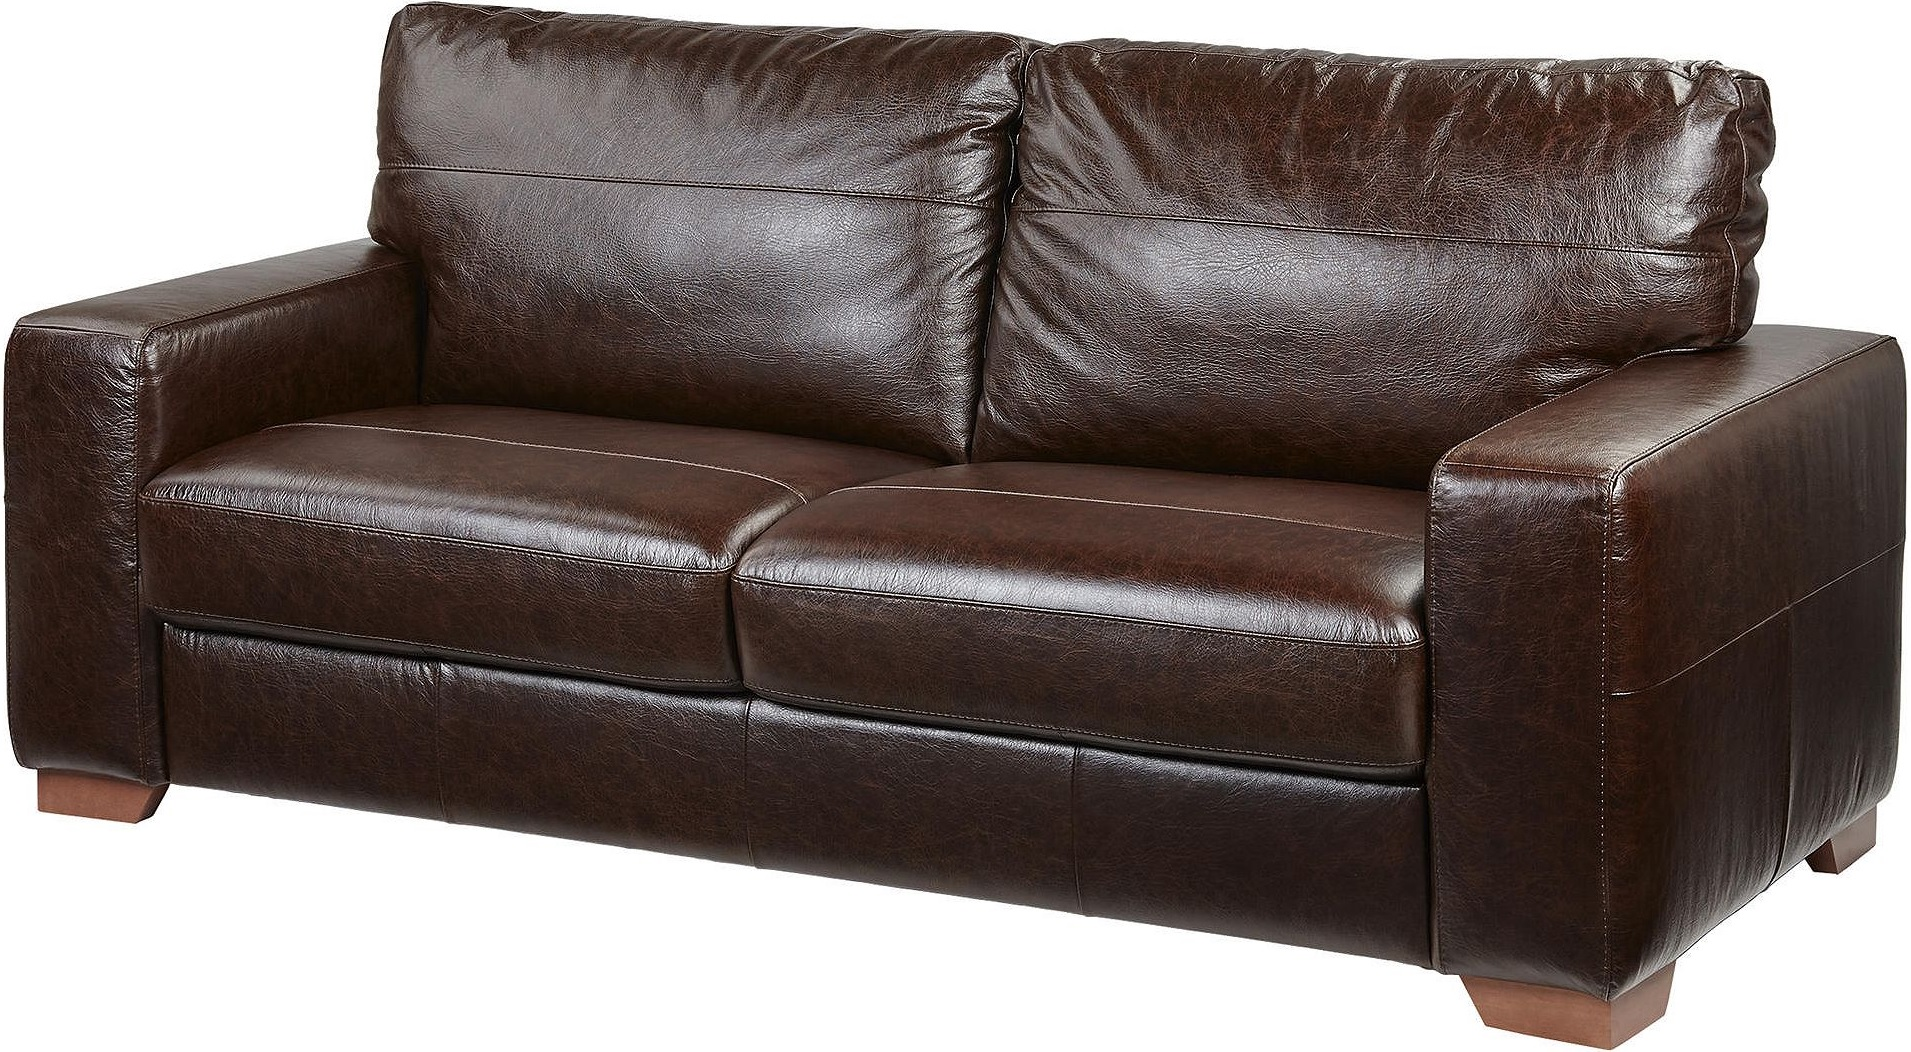 NEW Tesco Abbott 3 Seater Real Leather Sofa Chocolate